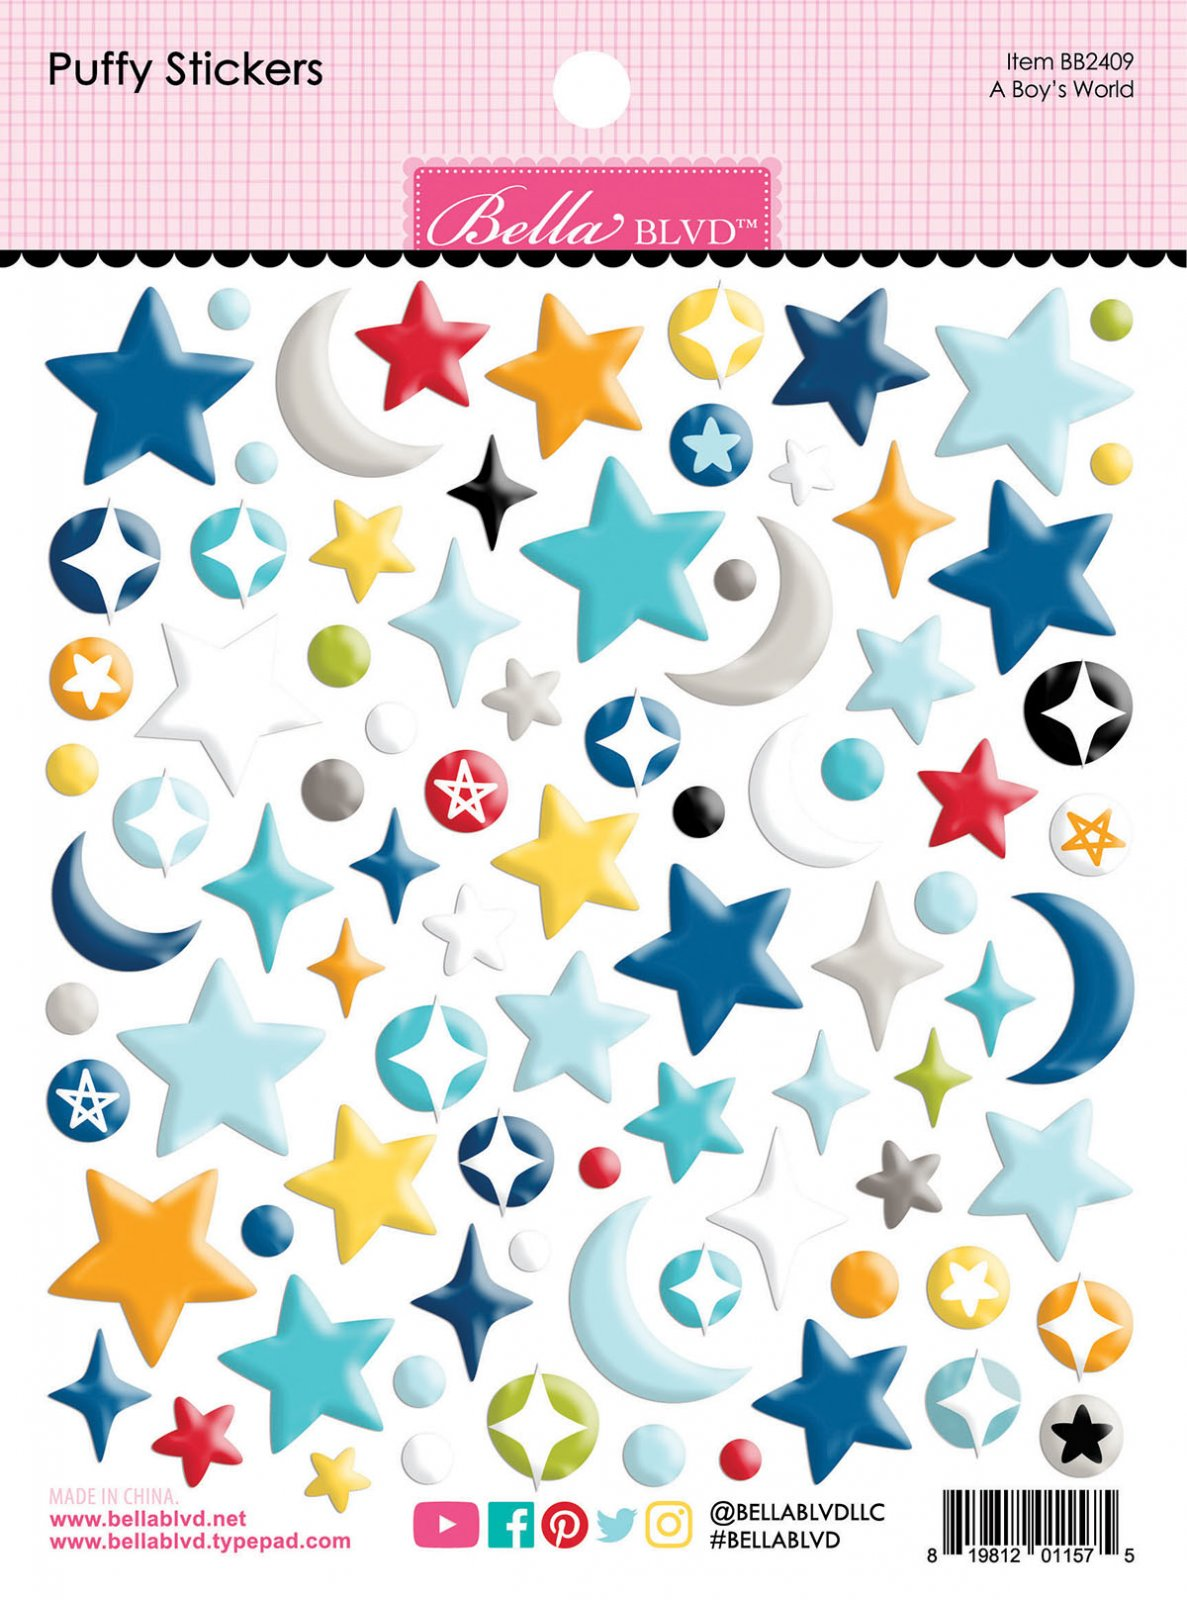 To The Moon - A Boy's World Puffy Stickers